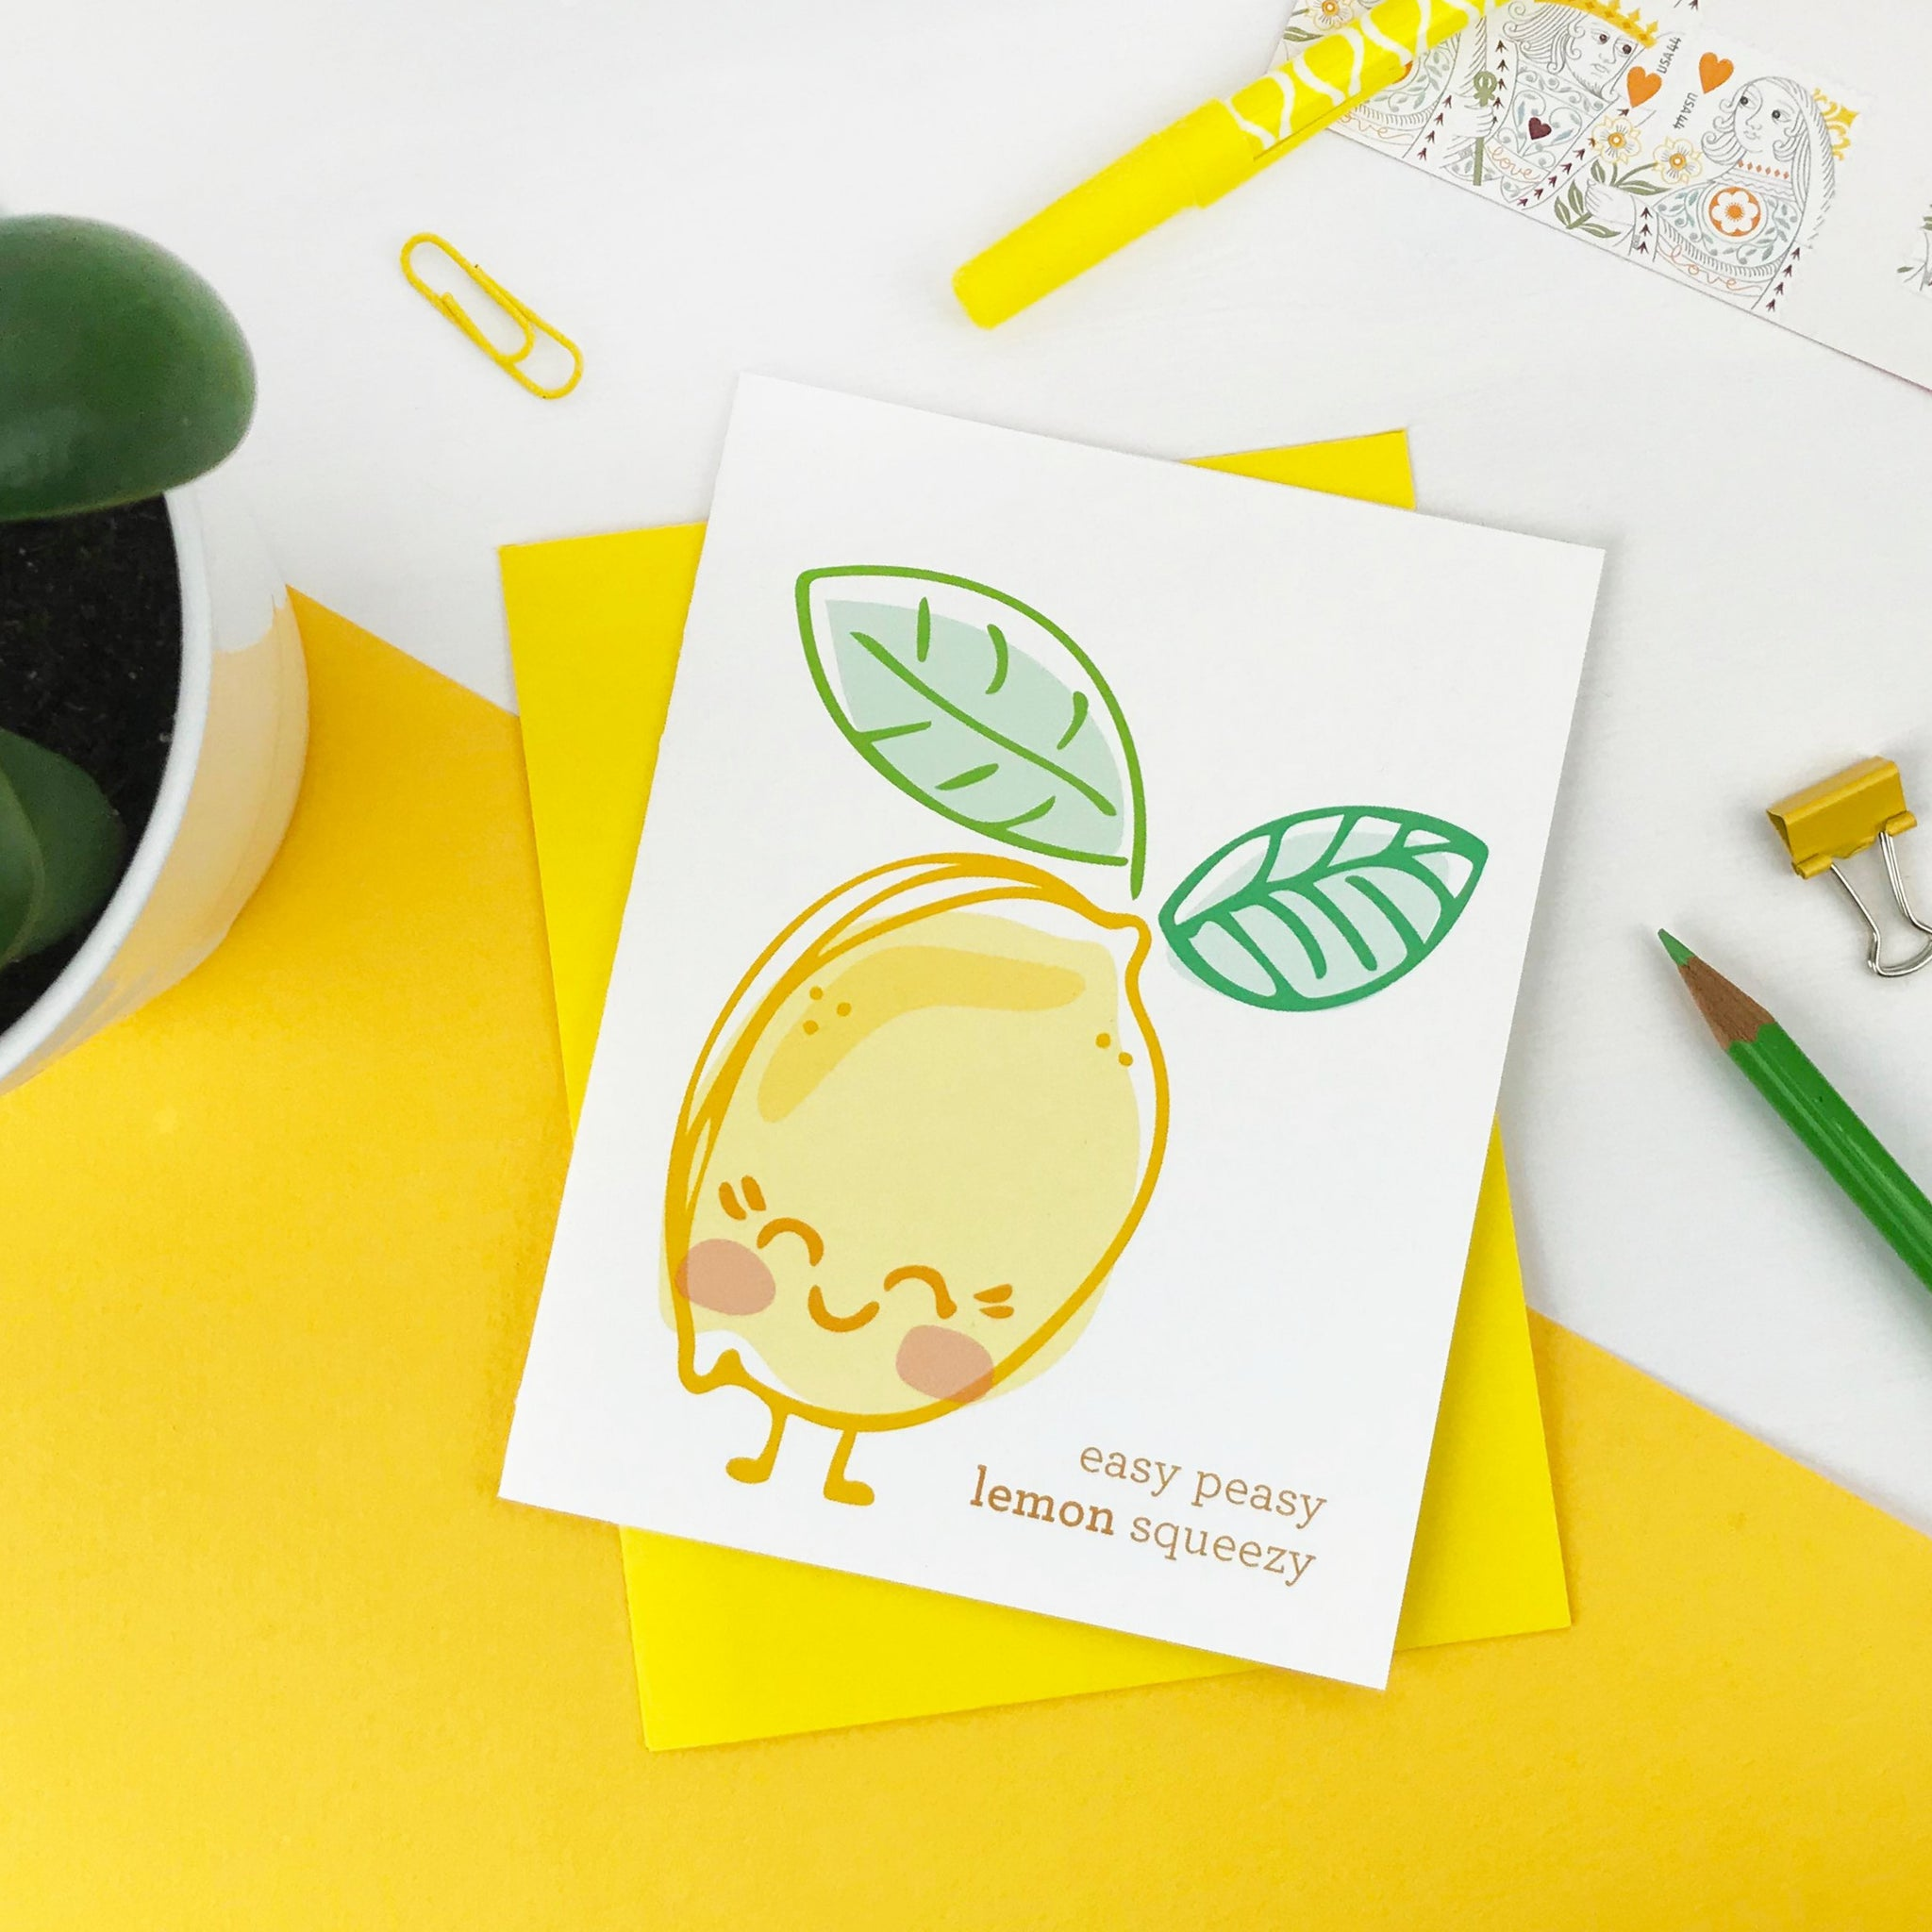 Easy Peasy Lemon Squeezy Card